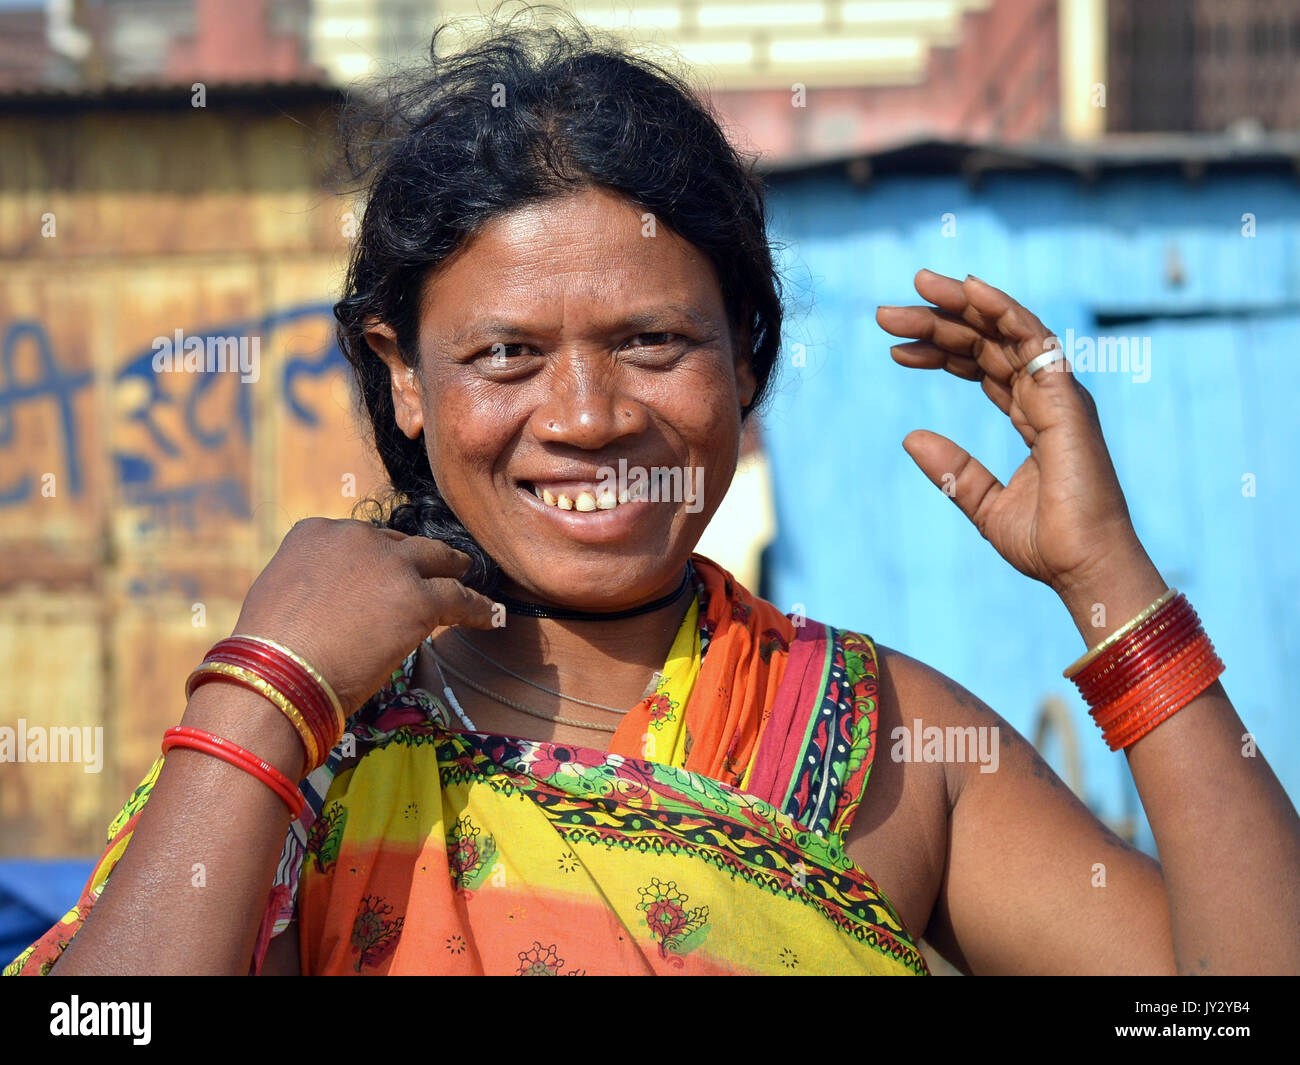 Closeup street portrait of a smiling and laughing mature Indian Adivasi woman, doing her hair with both hands (...and - Stock Image